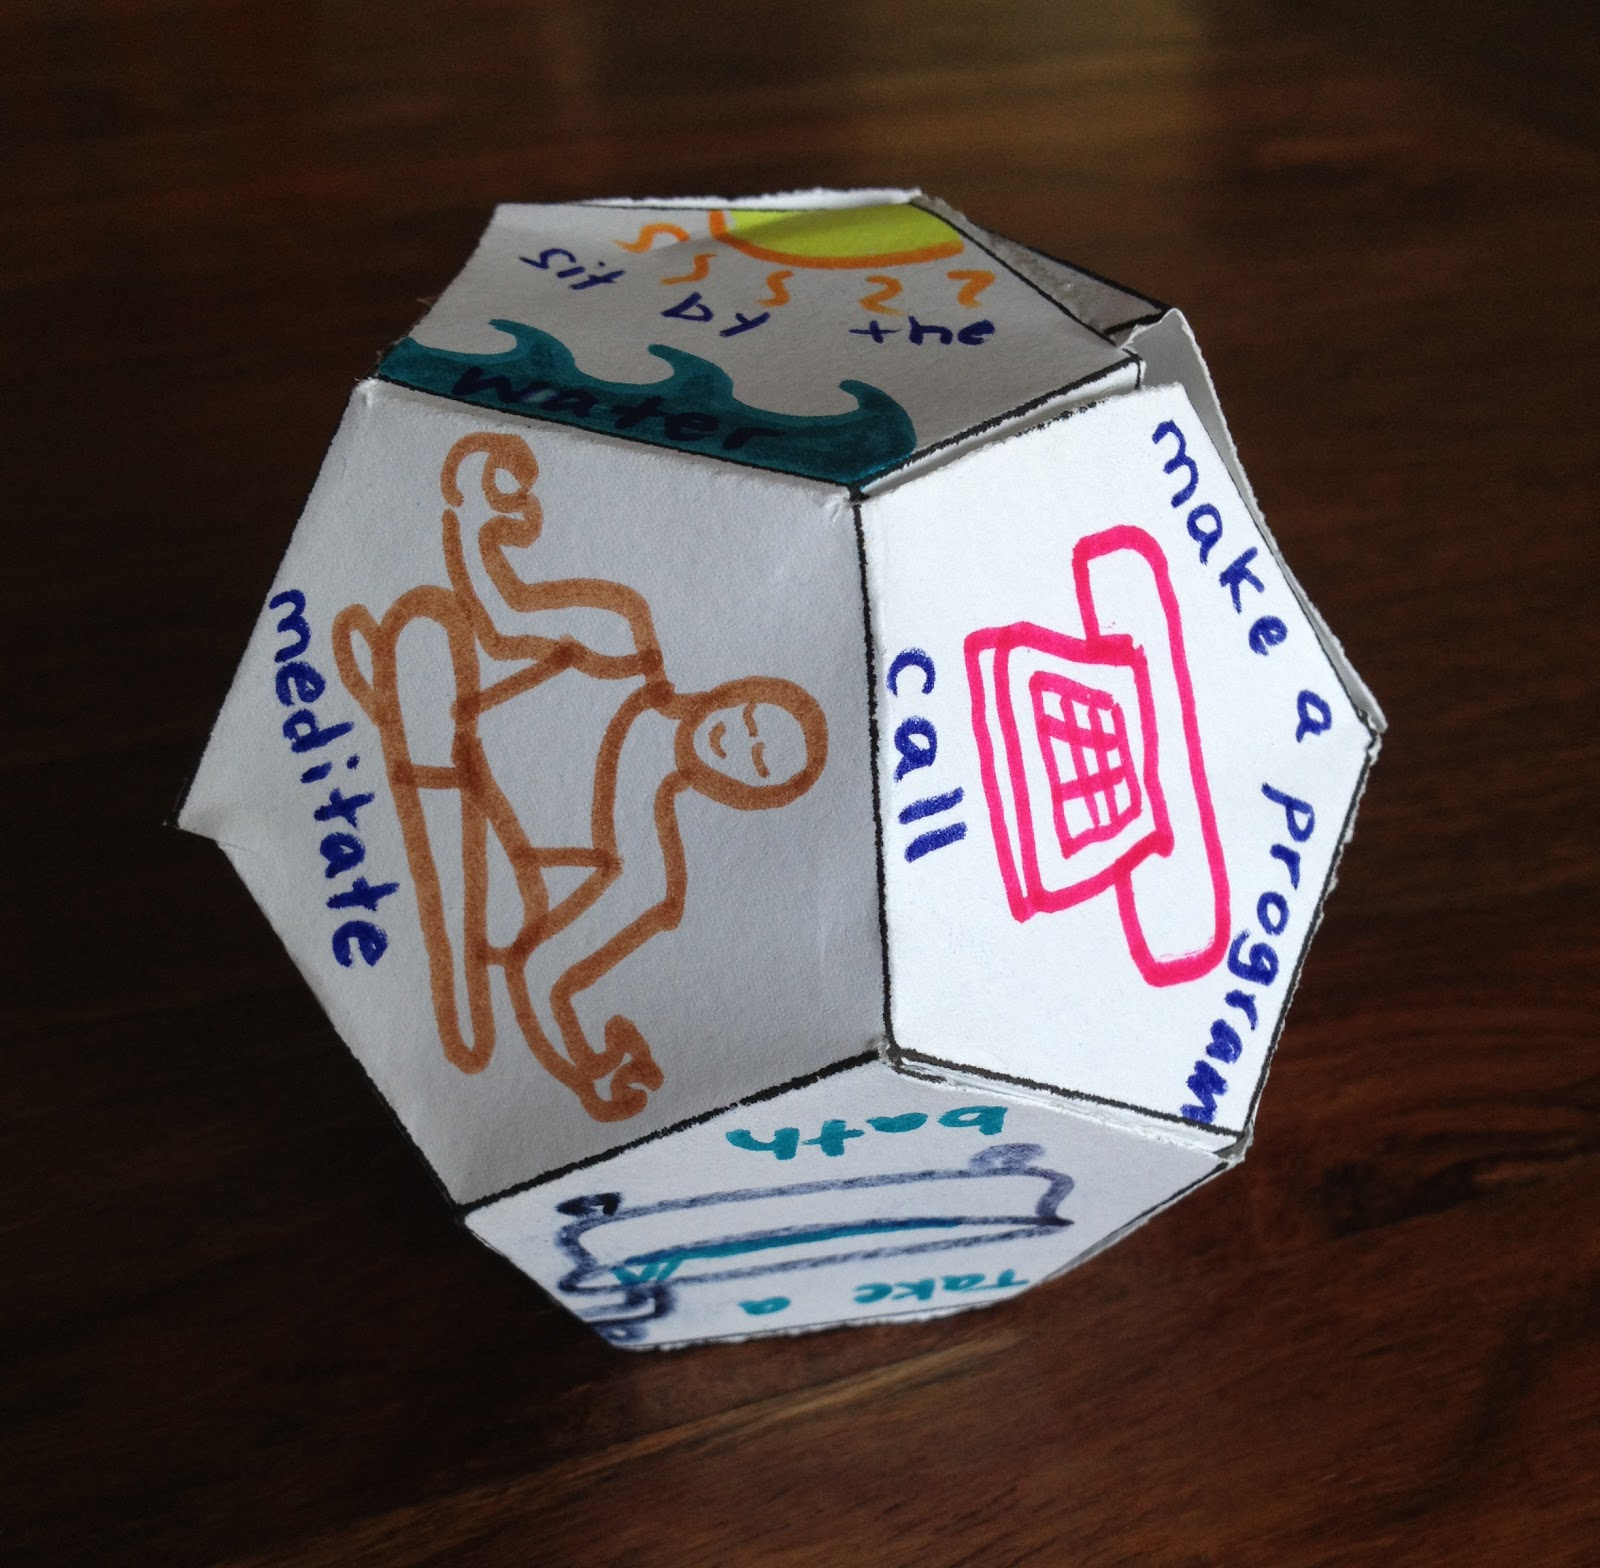 creative guide through the 12 steps 12 sided recovery dice